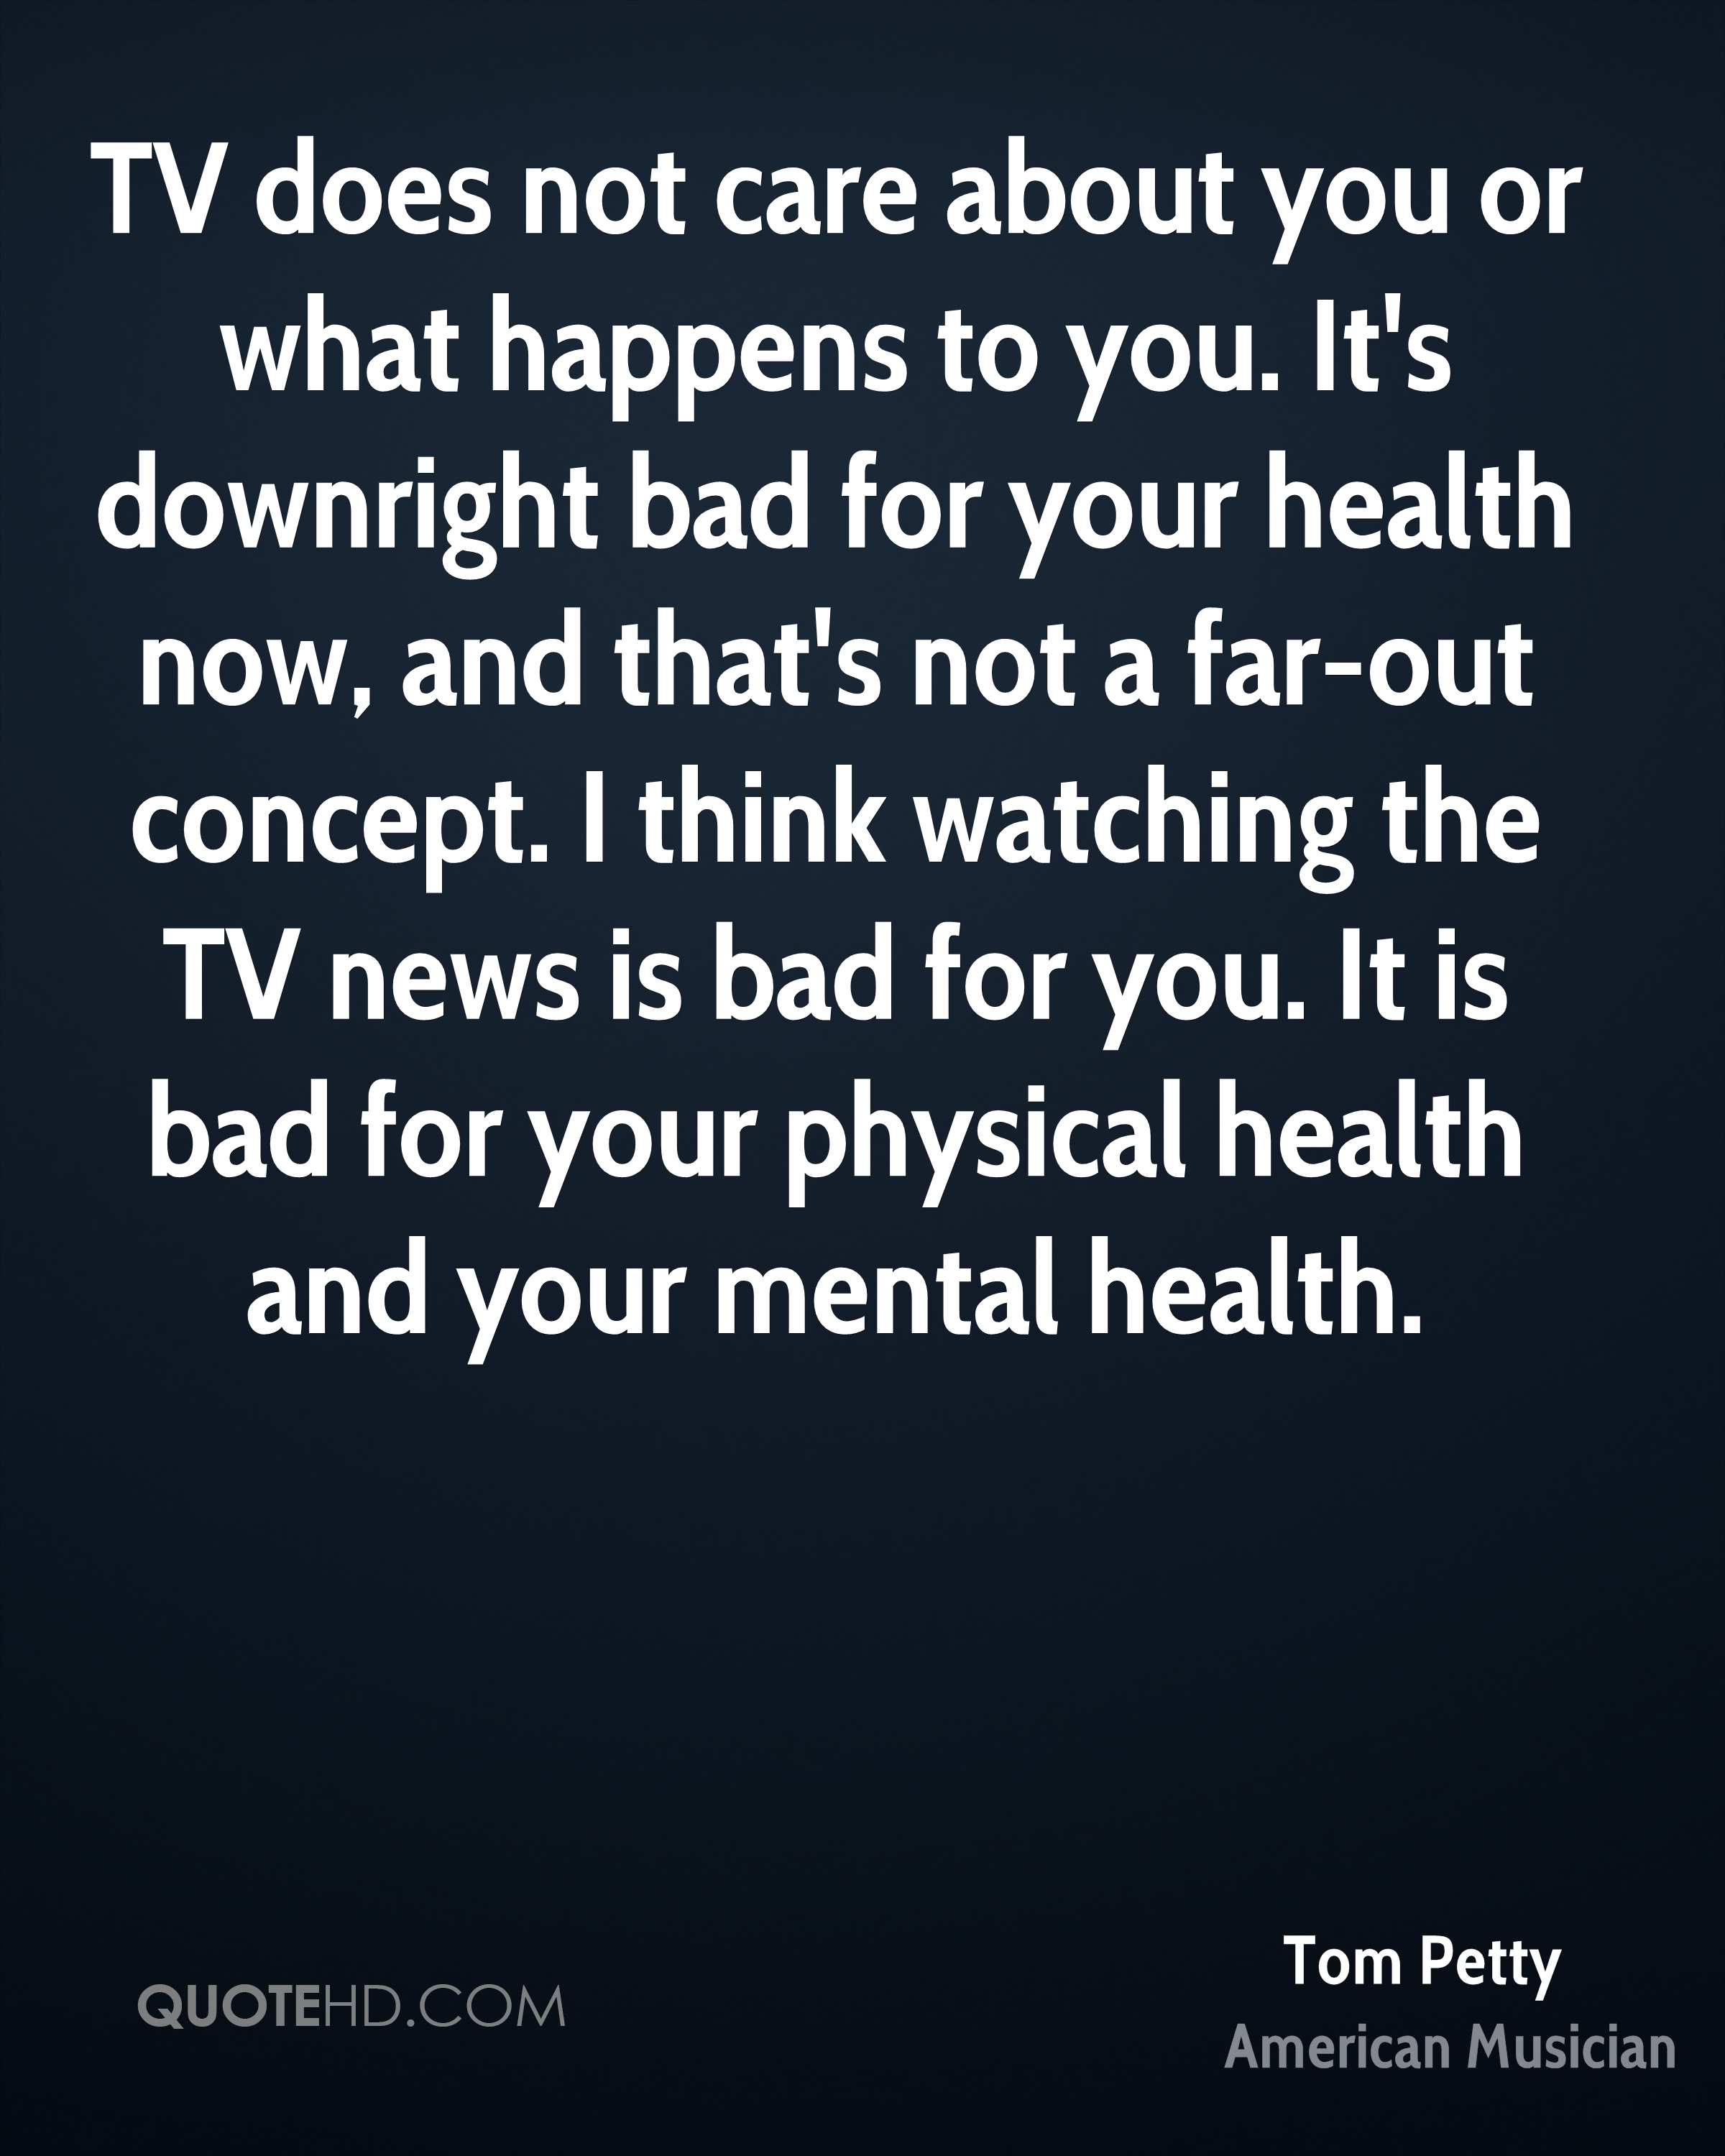 TV does not care about you or what happens to you. It's downright bad for your health now, and that's not a far-out concept. I think watching the TV news is bad for you. It is bad for your physical health and your mental health.